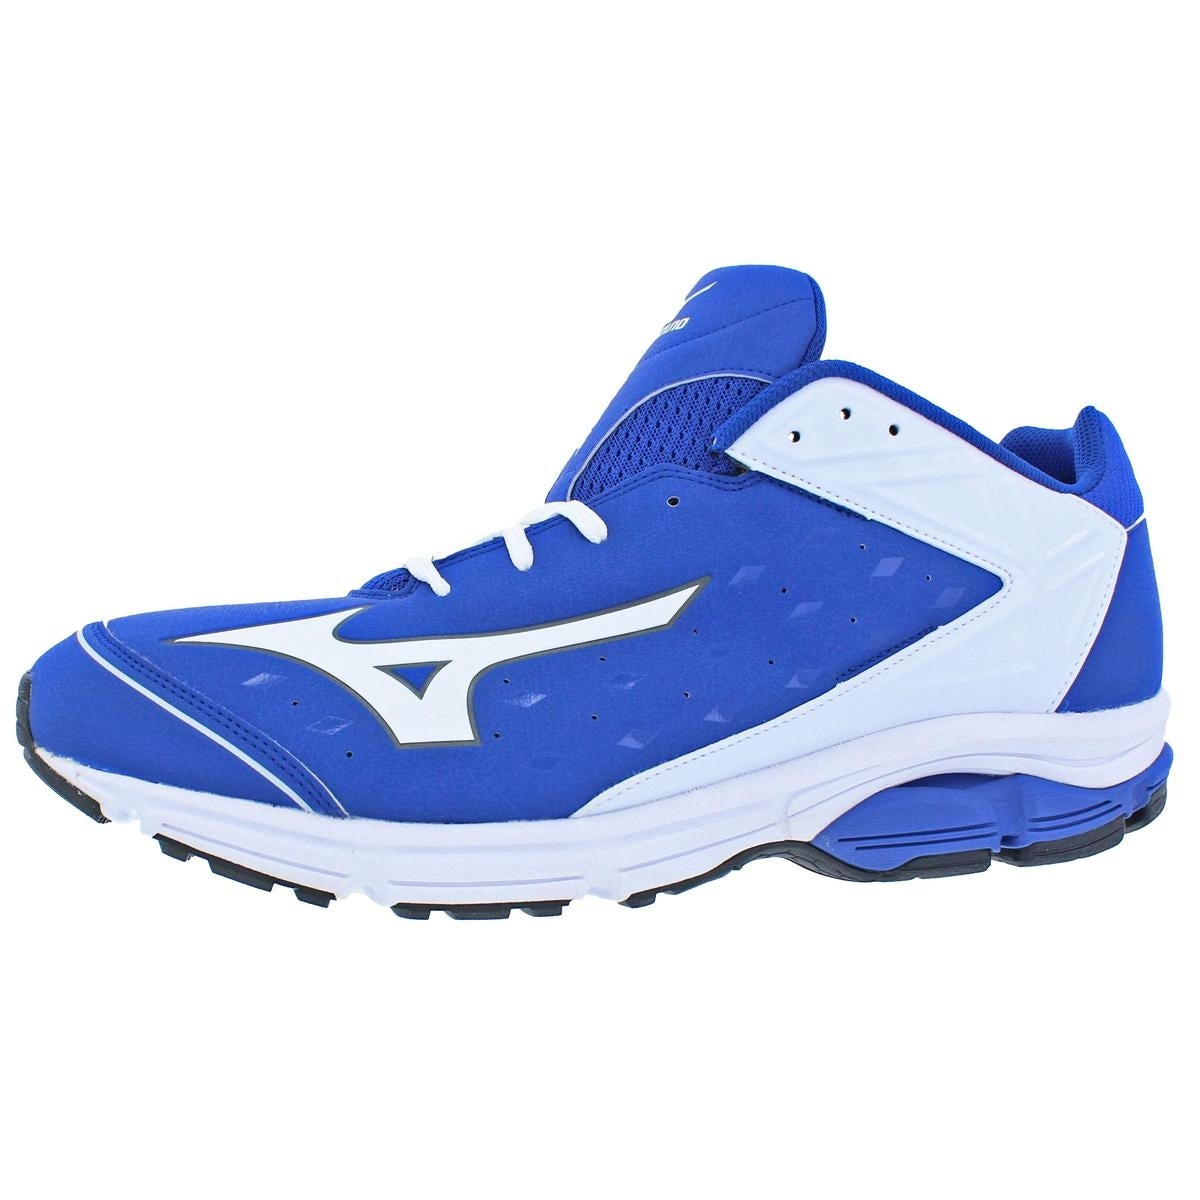 a6c6c407ccd6 Shop Mizuno Mens Wave Swagger 2 Trainer Baseball Shoes Baseball Trainer - 16  medium(d) - Free Shipping Today - Overstock - 22670952